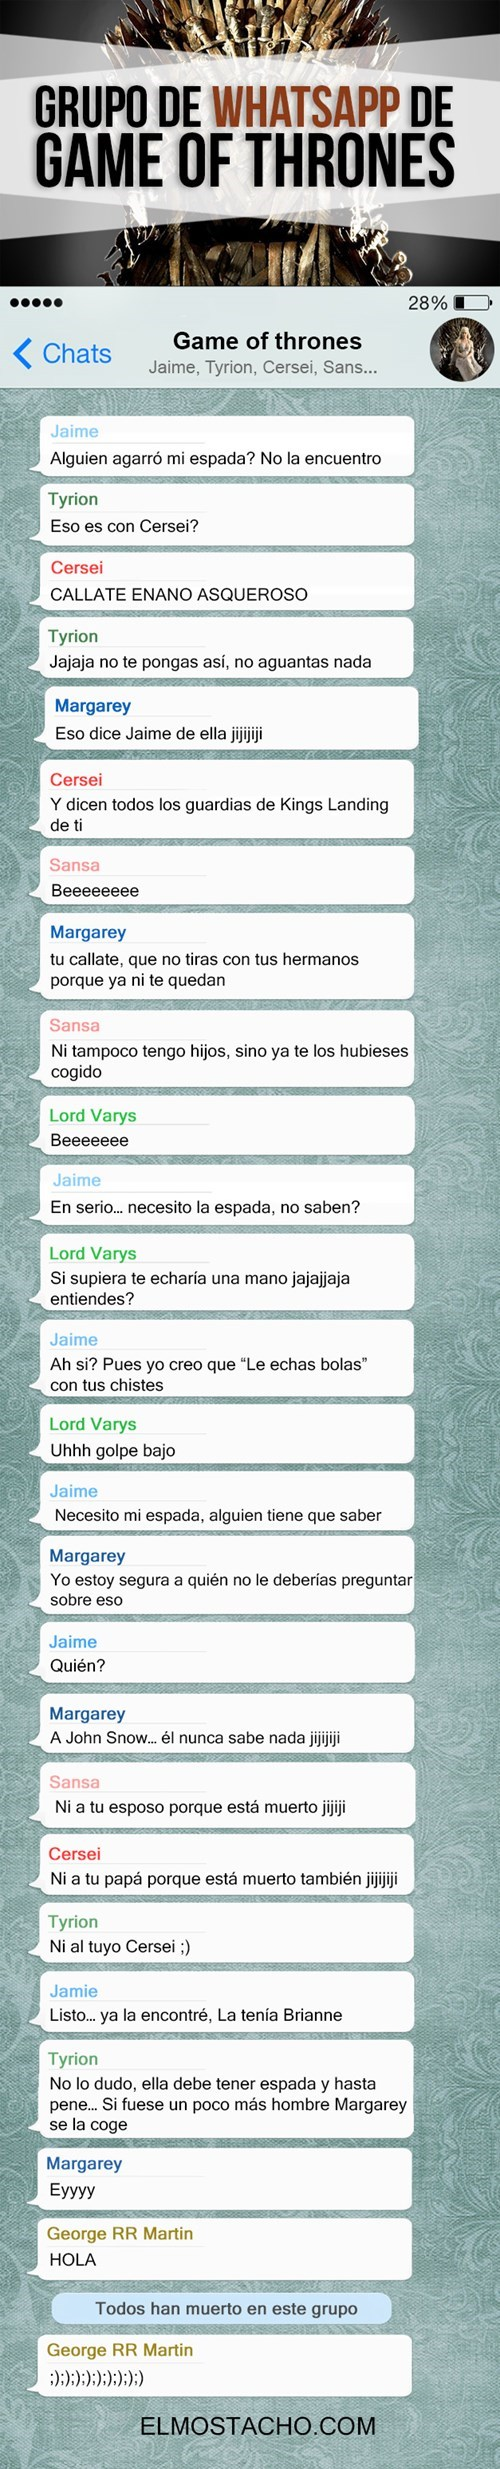 whatsapp game of thrones